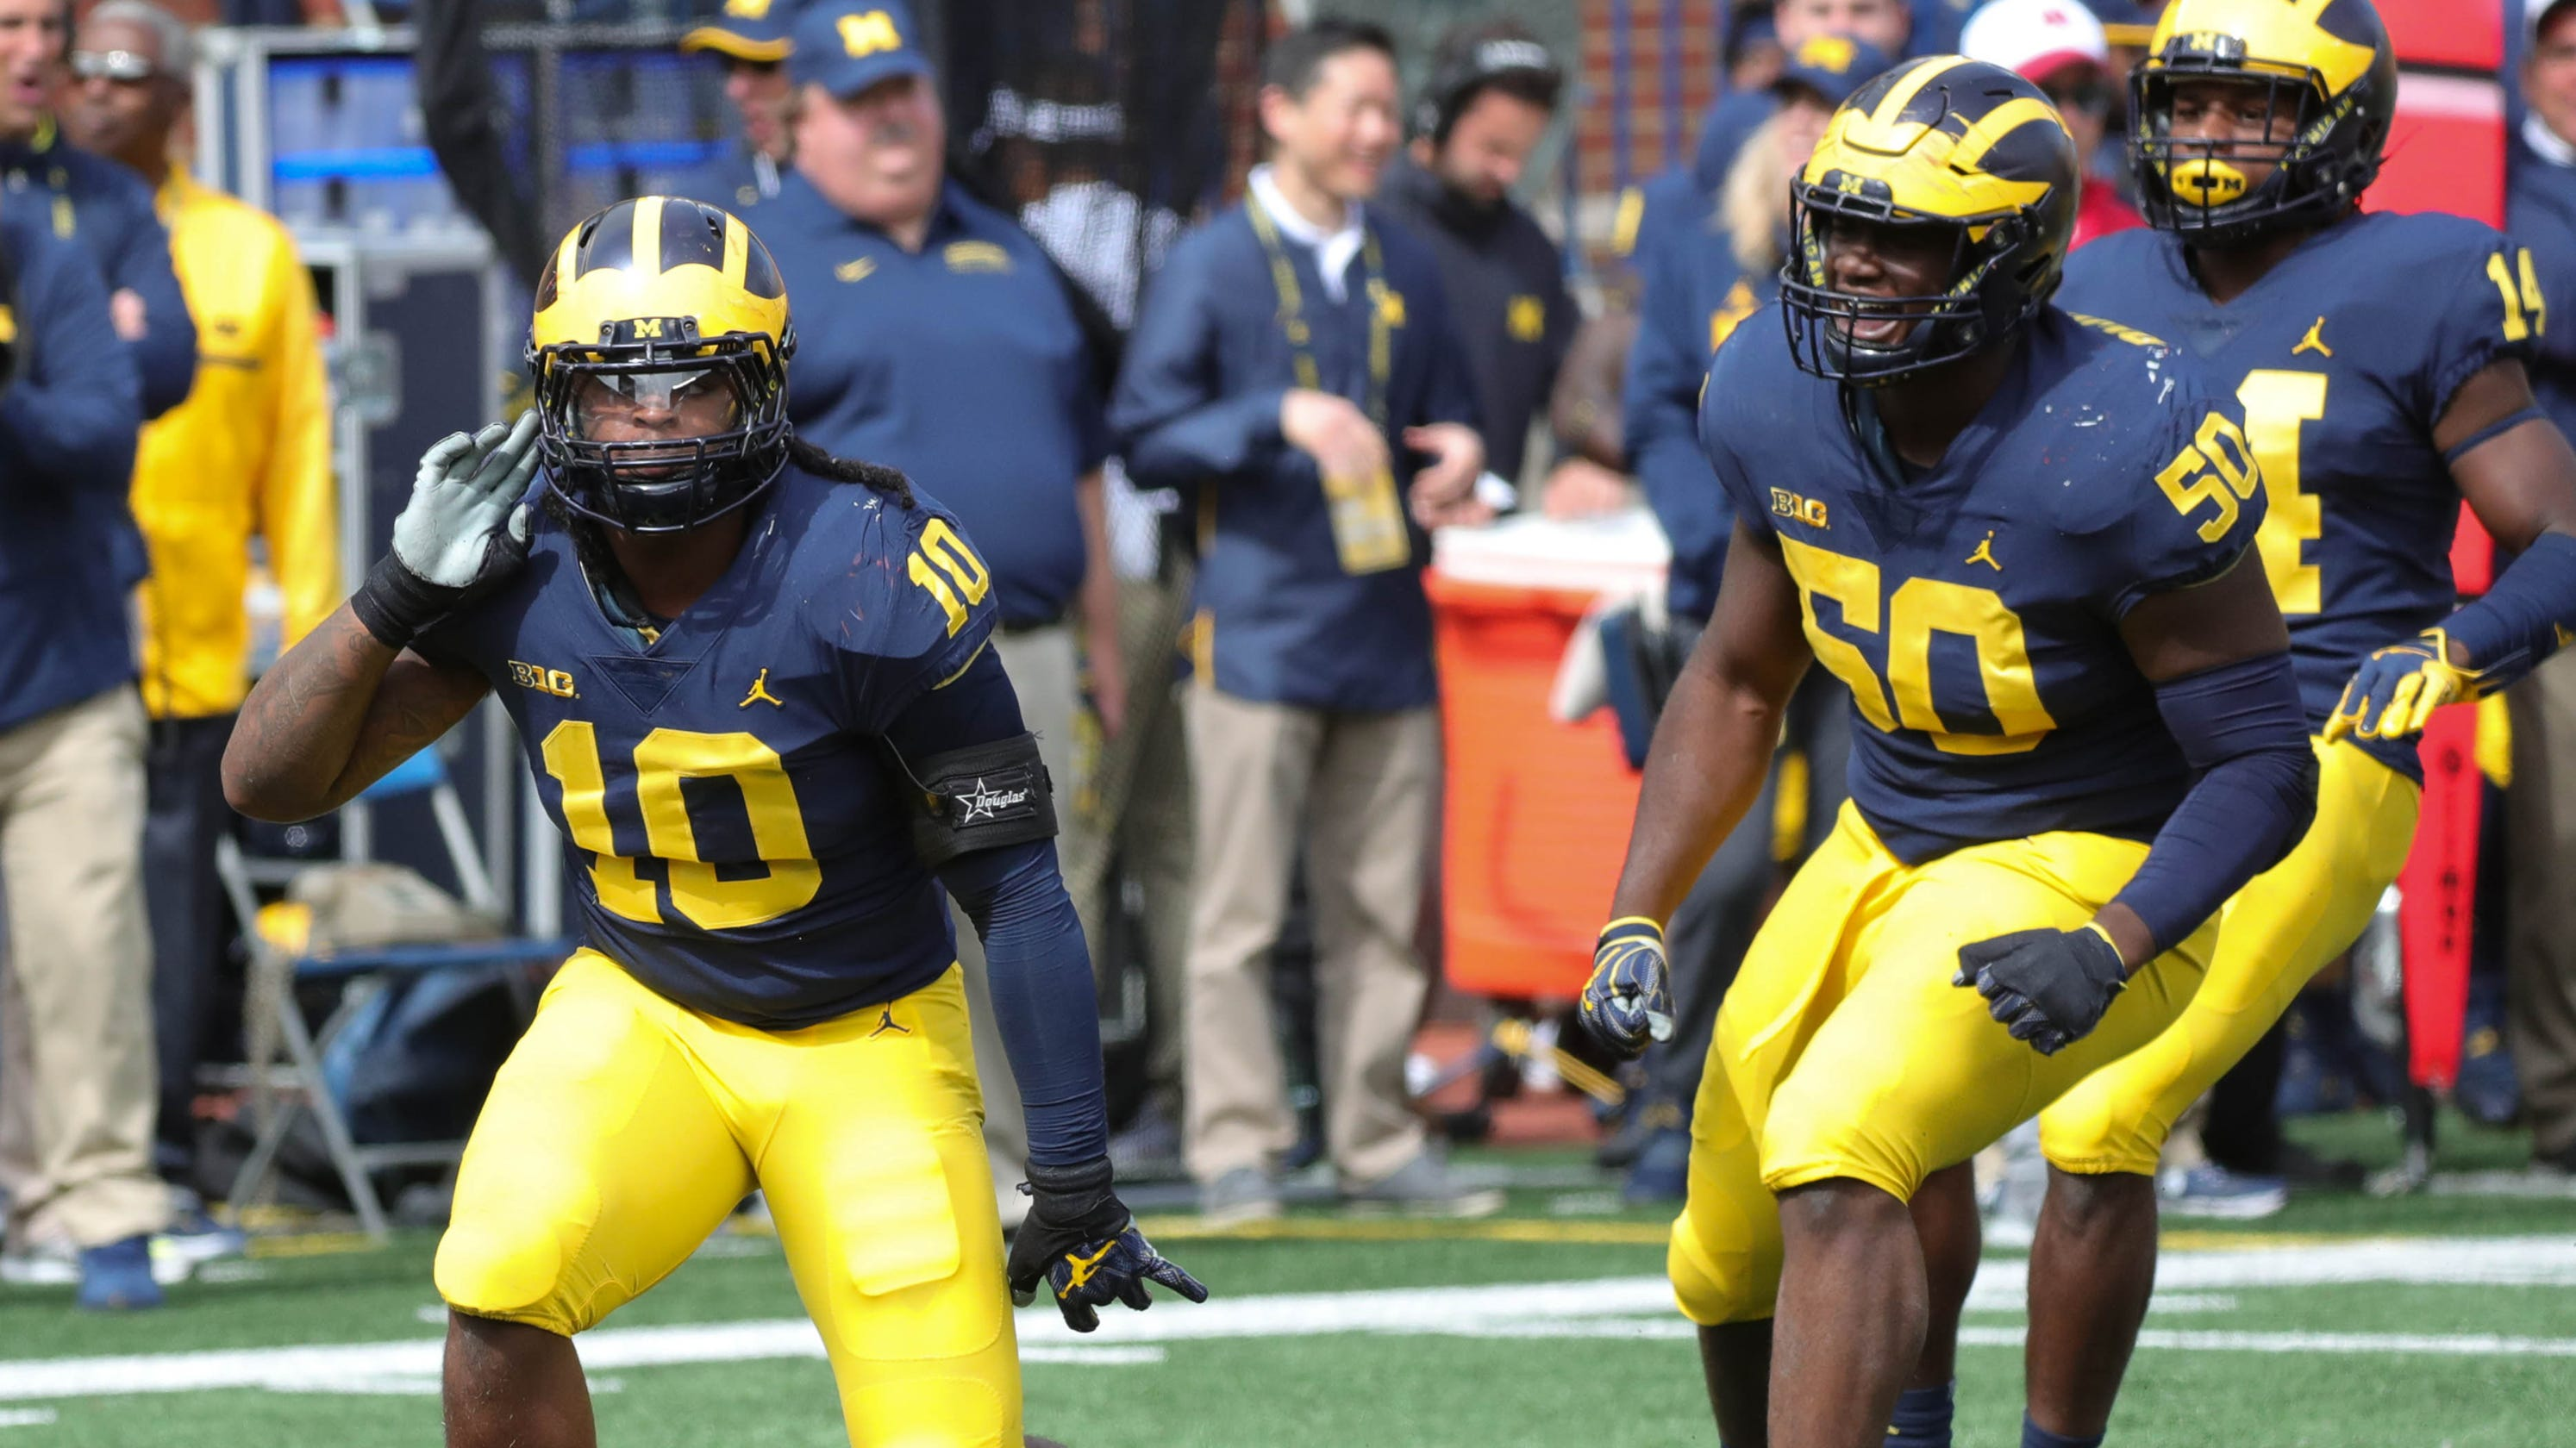 83cd7b2a47d Michigan football at Ohio State: Scouting report, prediction